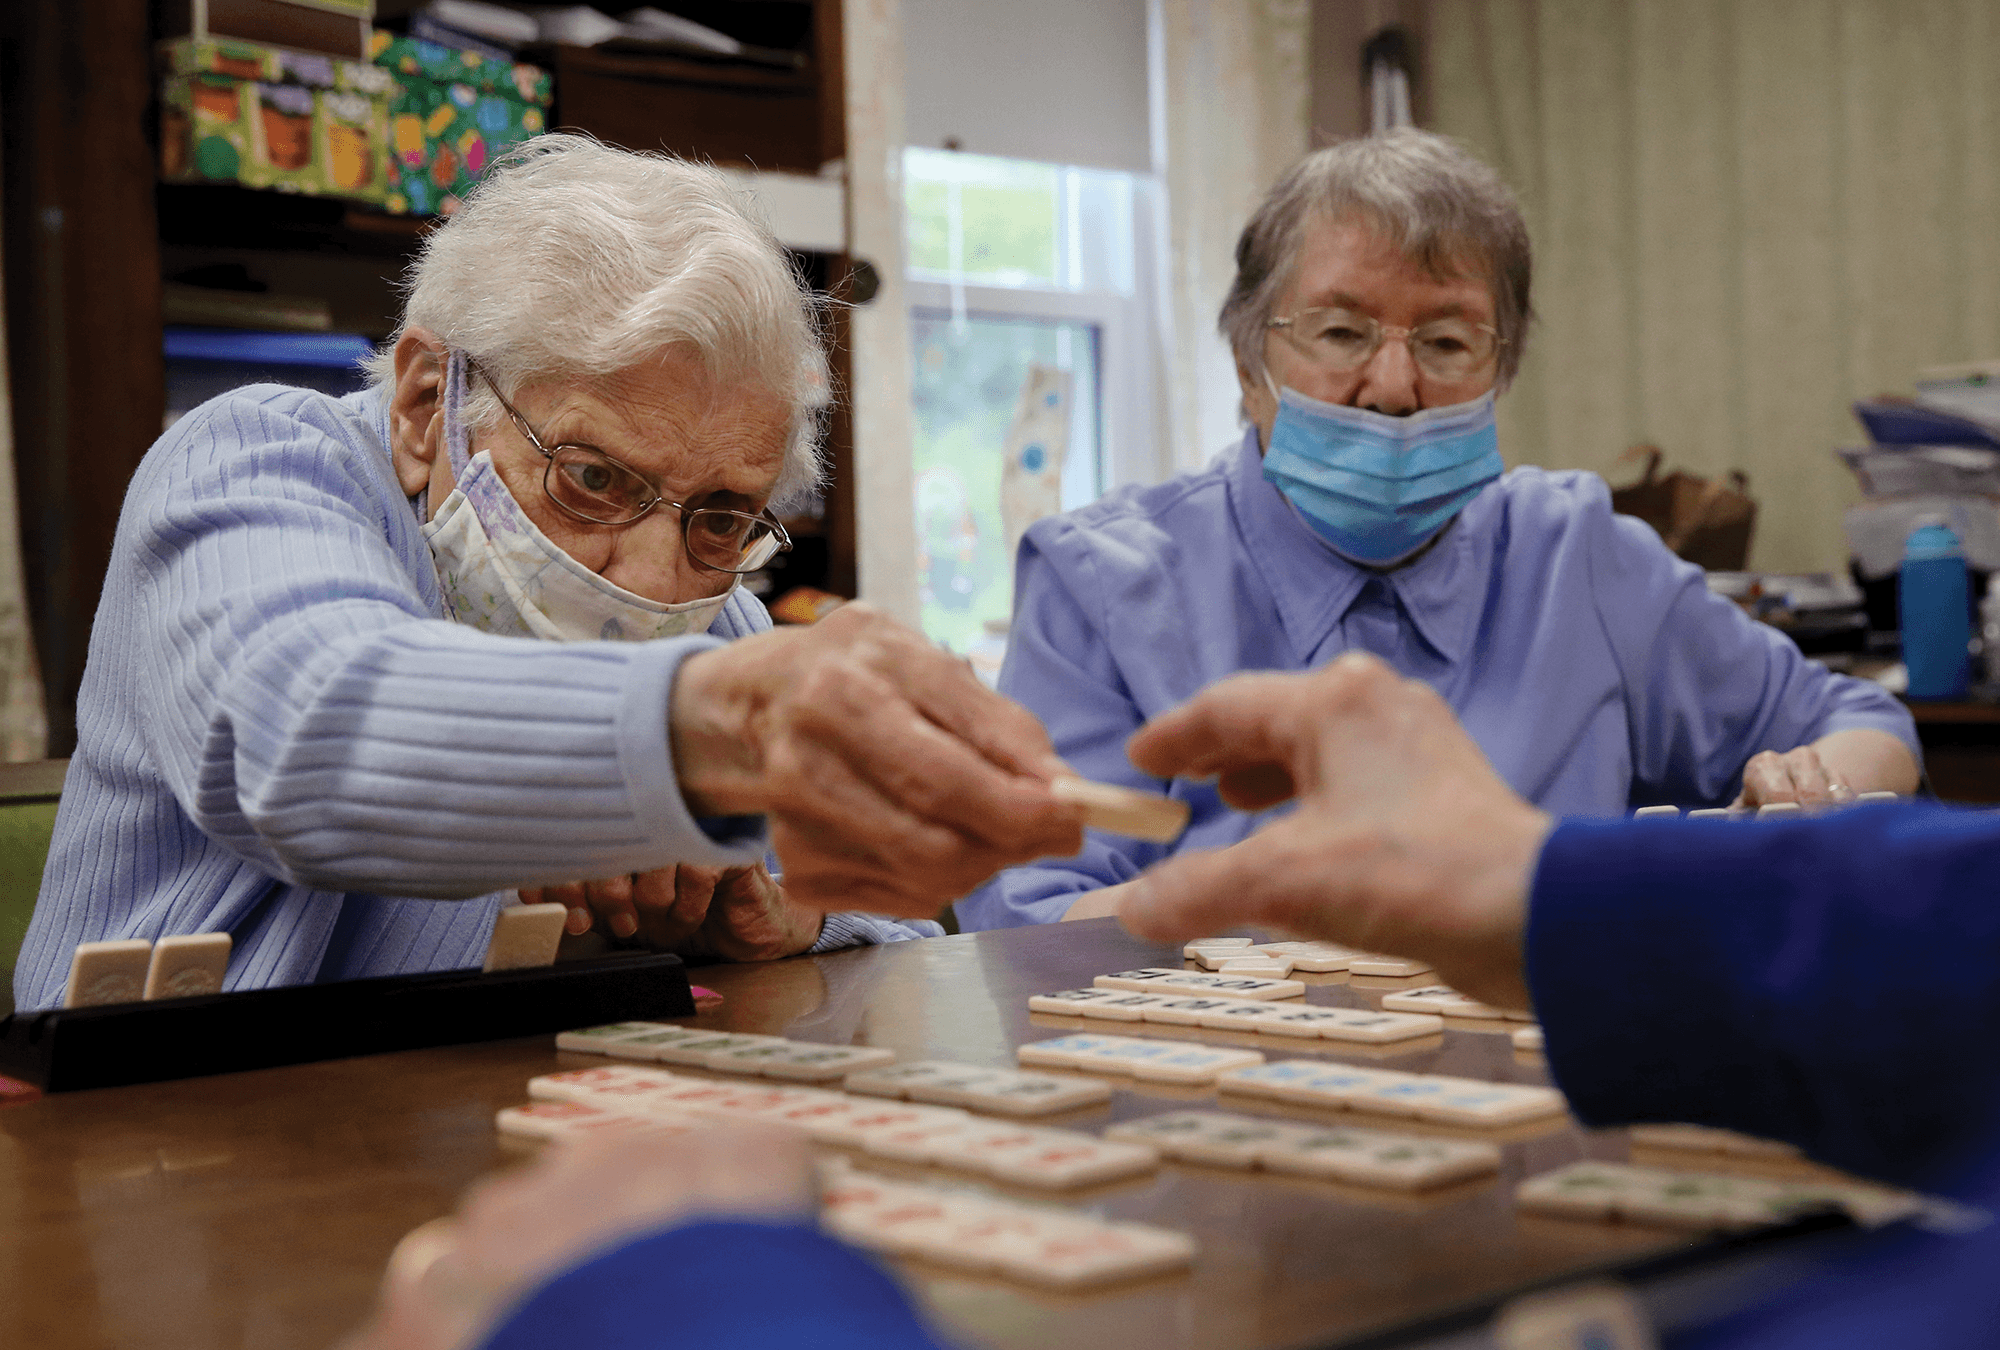 Three Felician Catholic sisters play a board game together, all wearing masks.